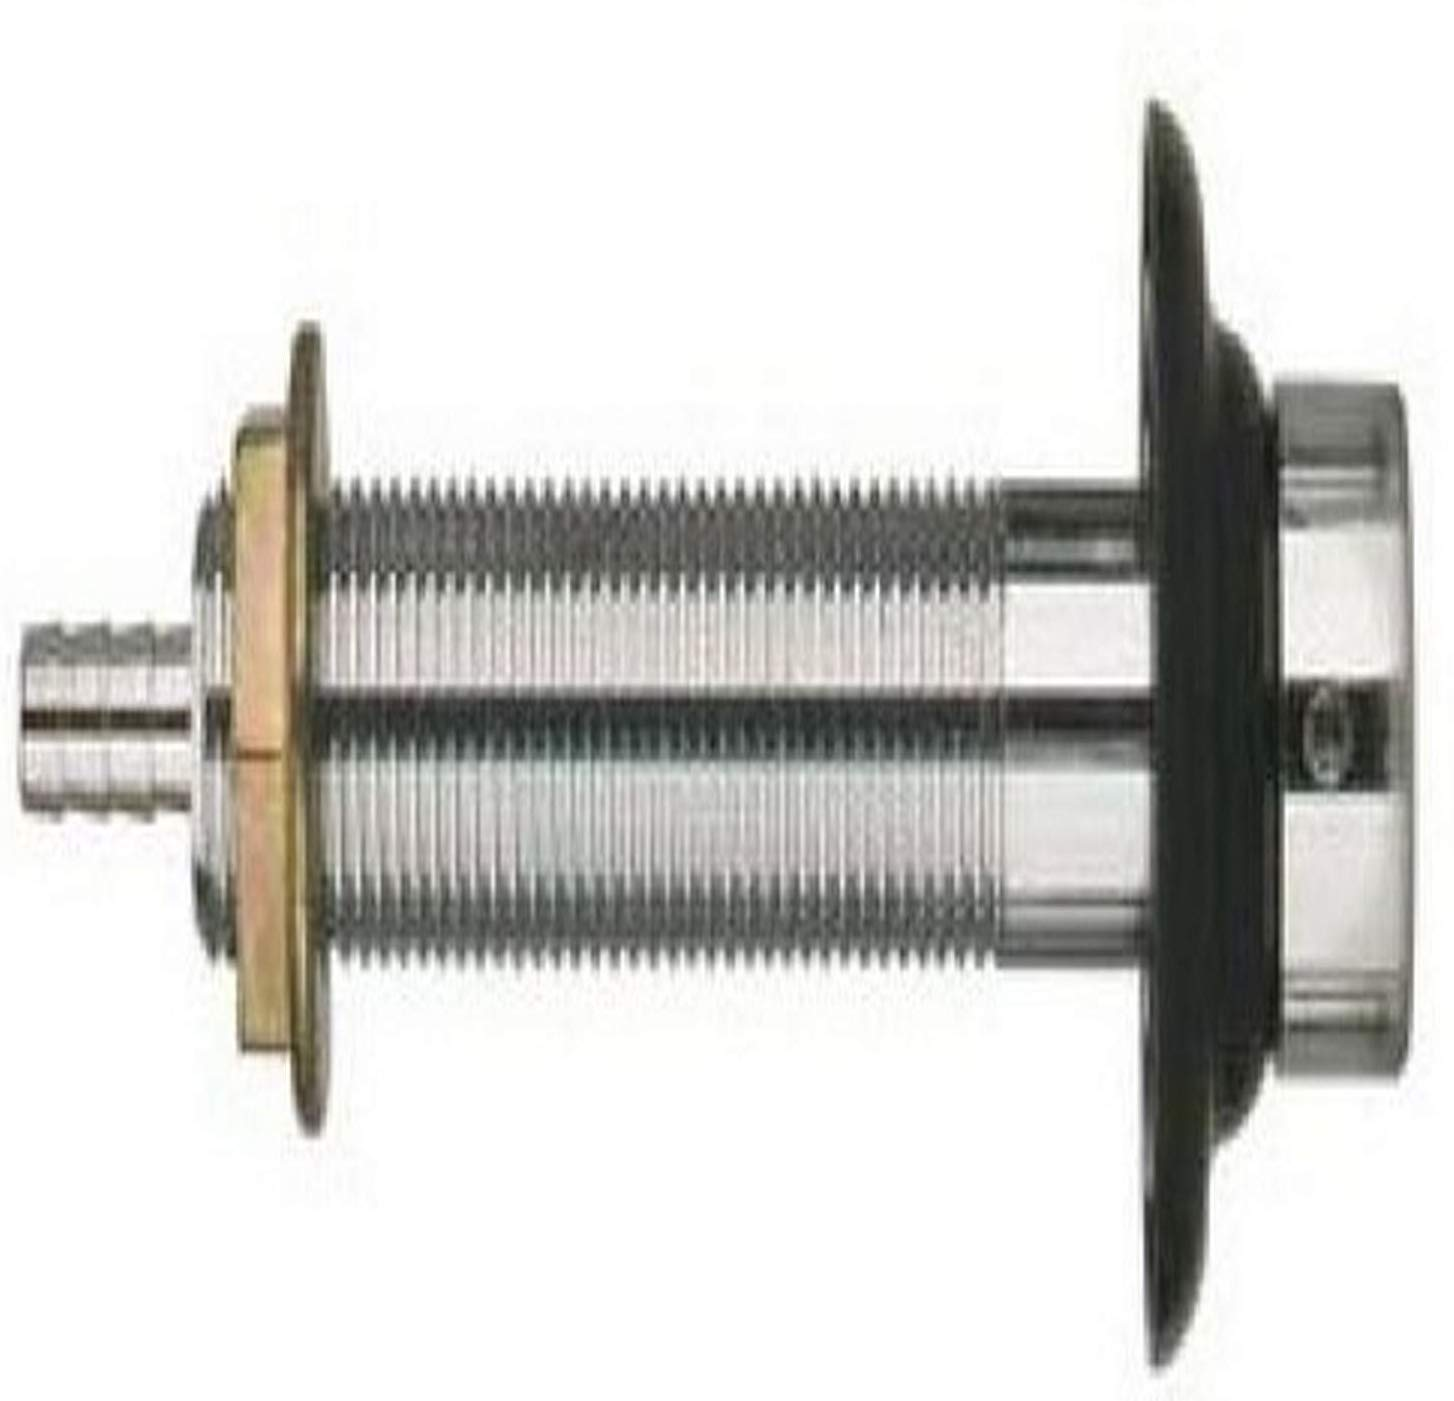 4-1/2'' SS NIPPLE SHANK ASSEMBLY - 3/16'' BORE ID